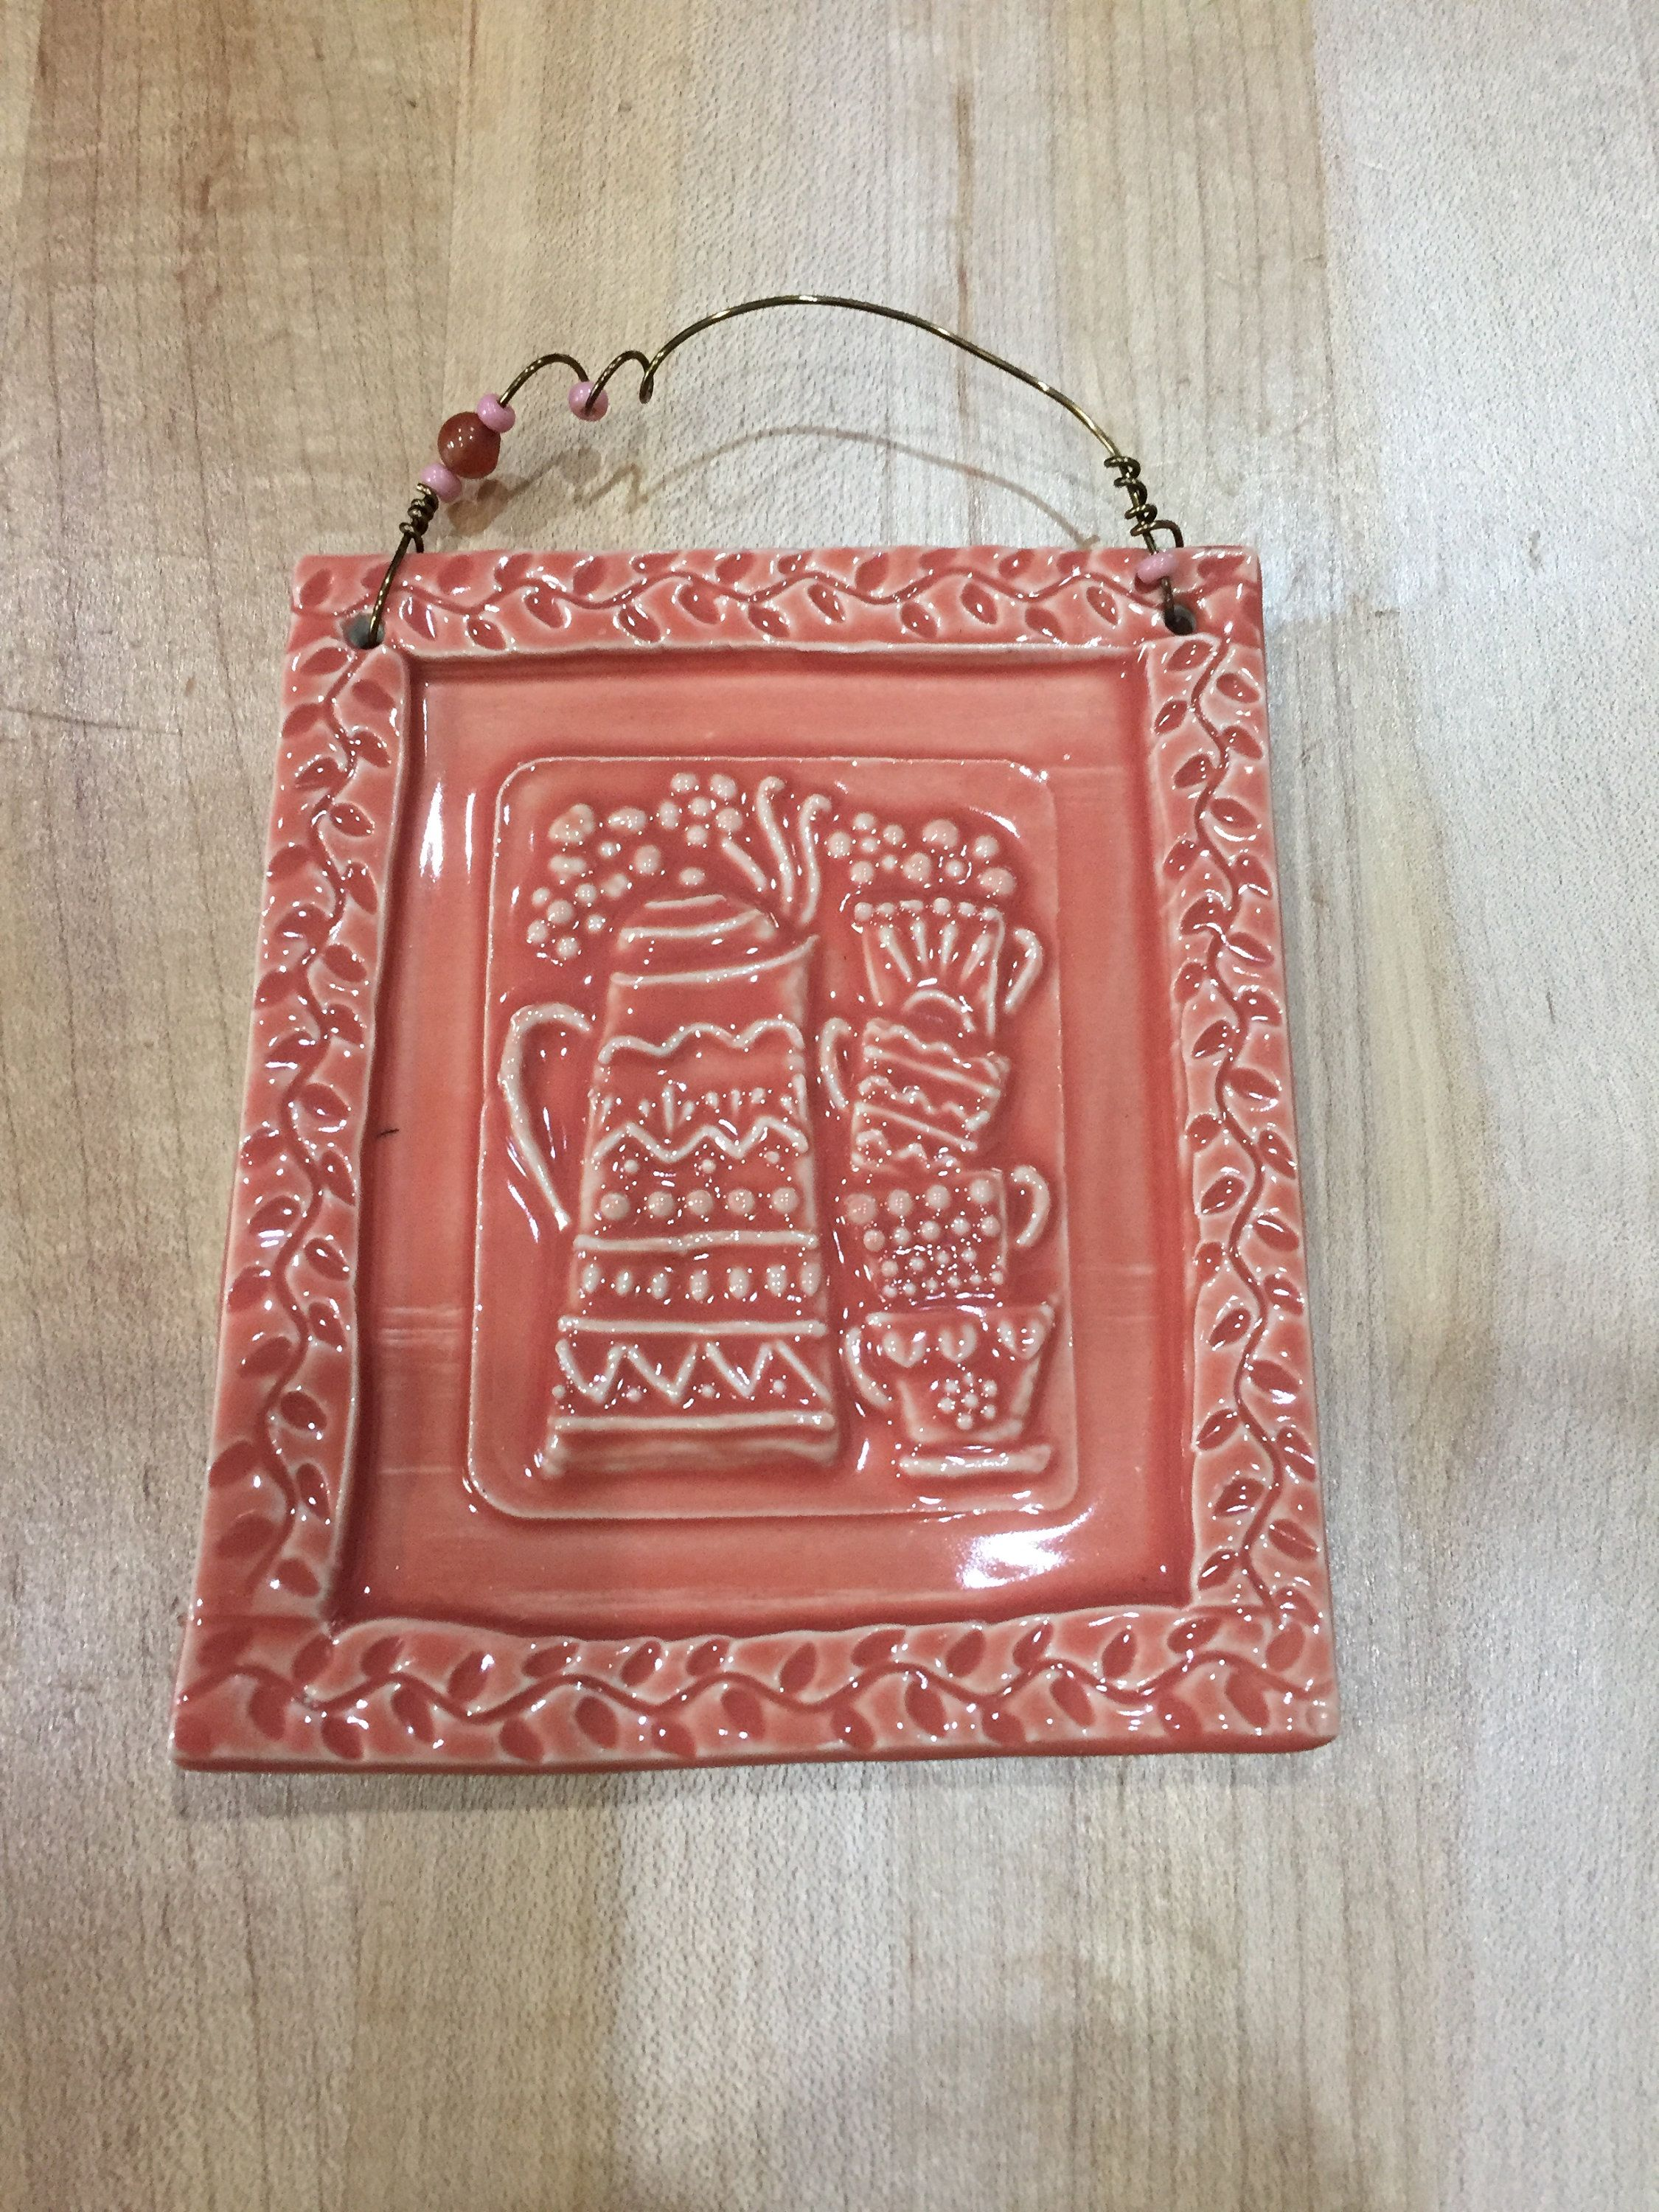 Coral Coffee and Cups Ceramic Art Tile, Coffee Decor